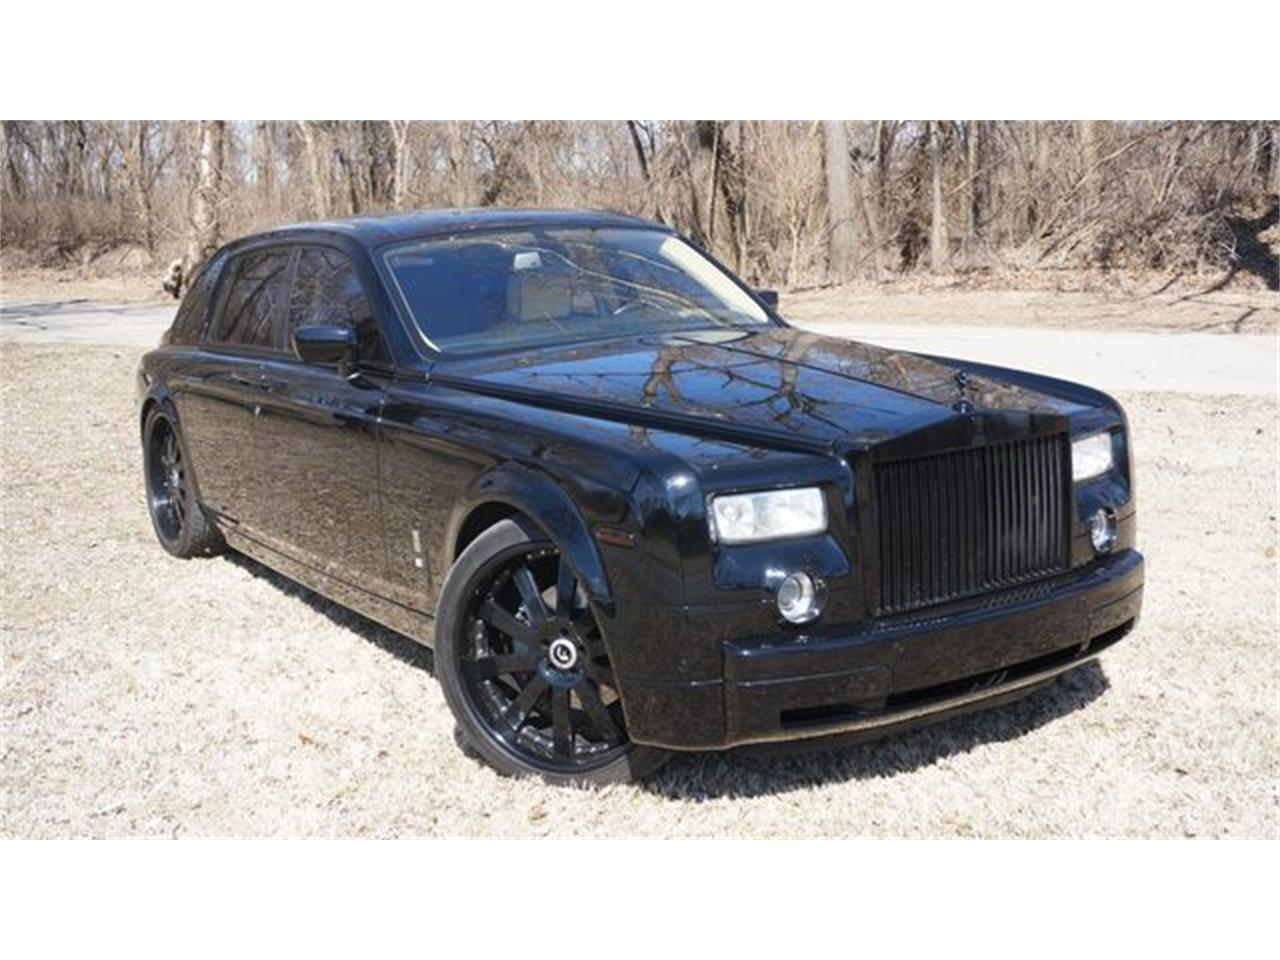 2006 Rolls-Royce Phantom for sale in Valley Park, MO – photo 7